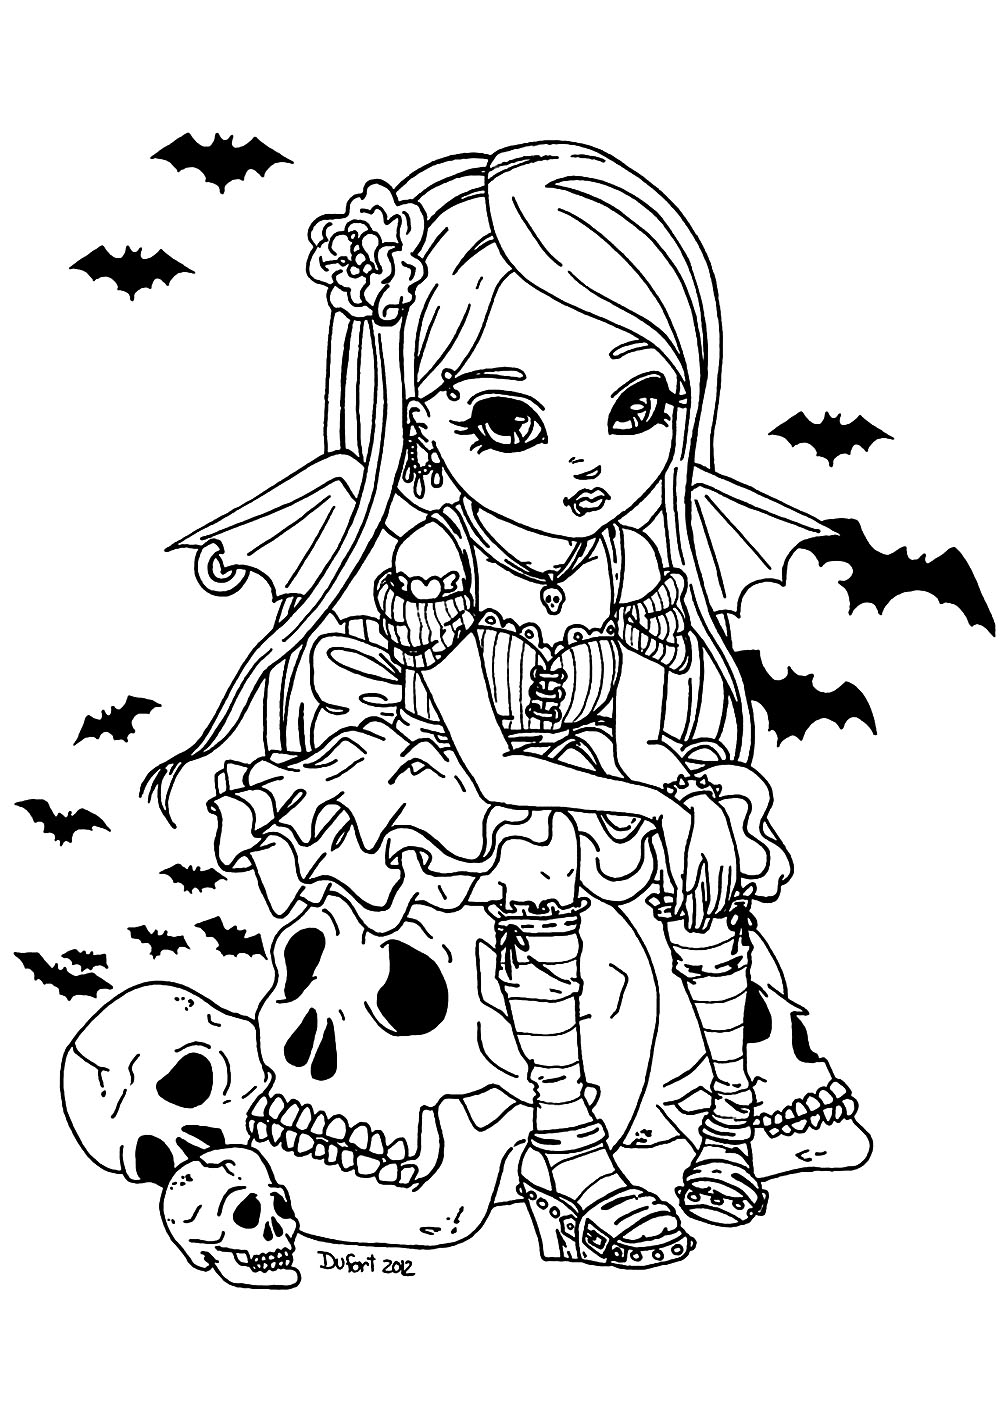 Color this cute little vampire girl, sitting on a big skull